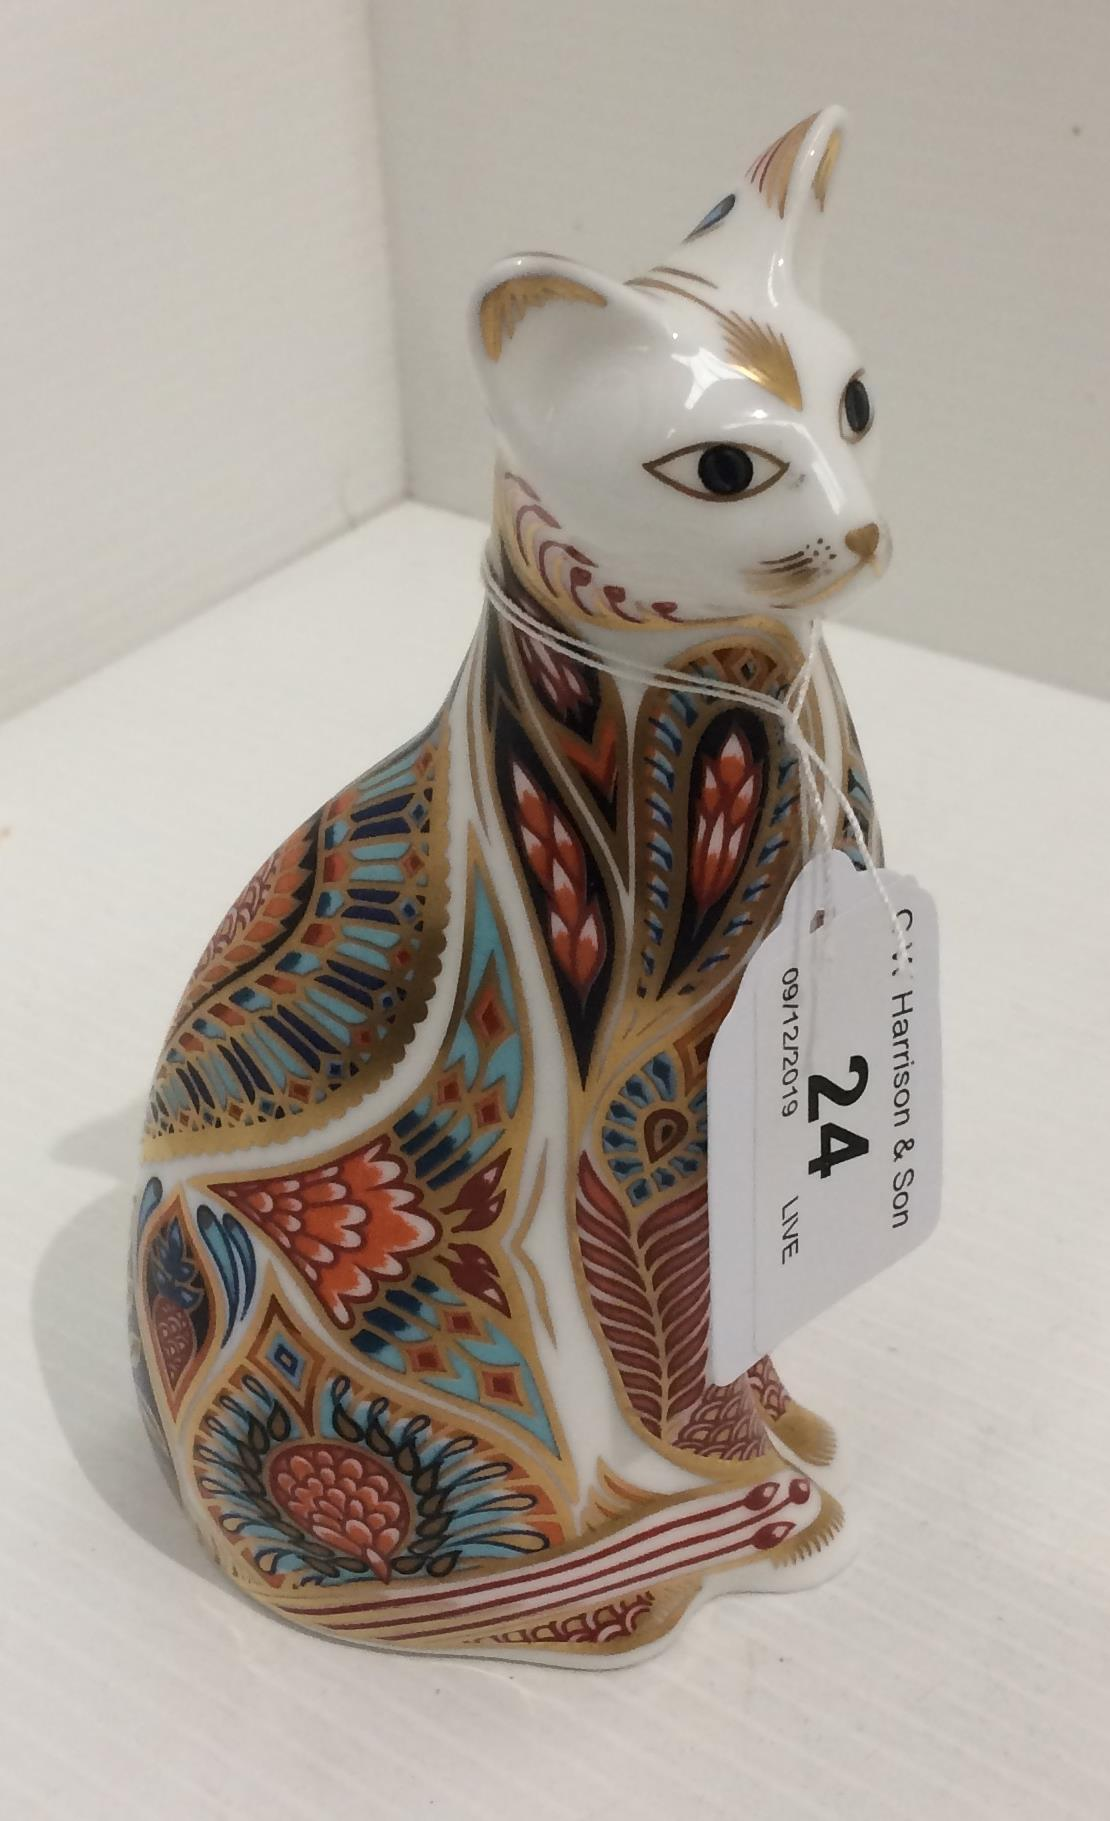 Lot 24 - A Royal Crown Derby bone china cat paperweight 14cm high